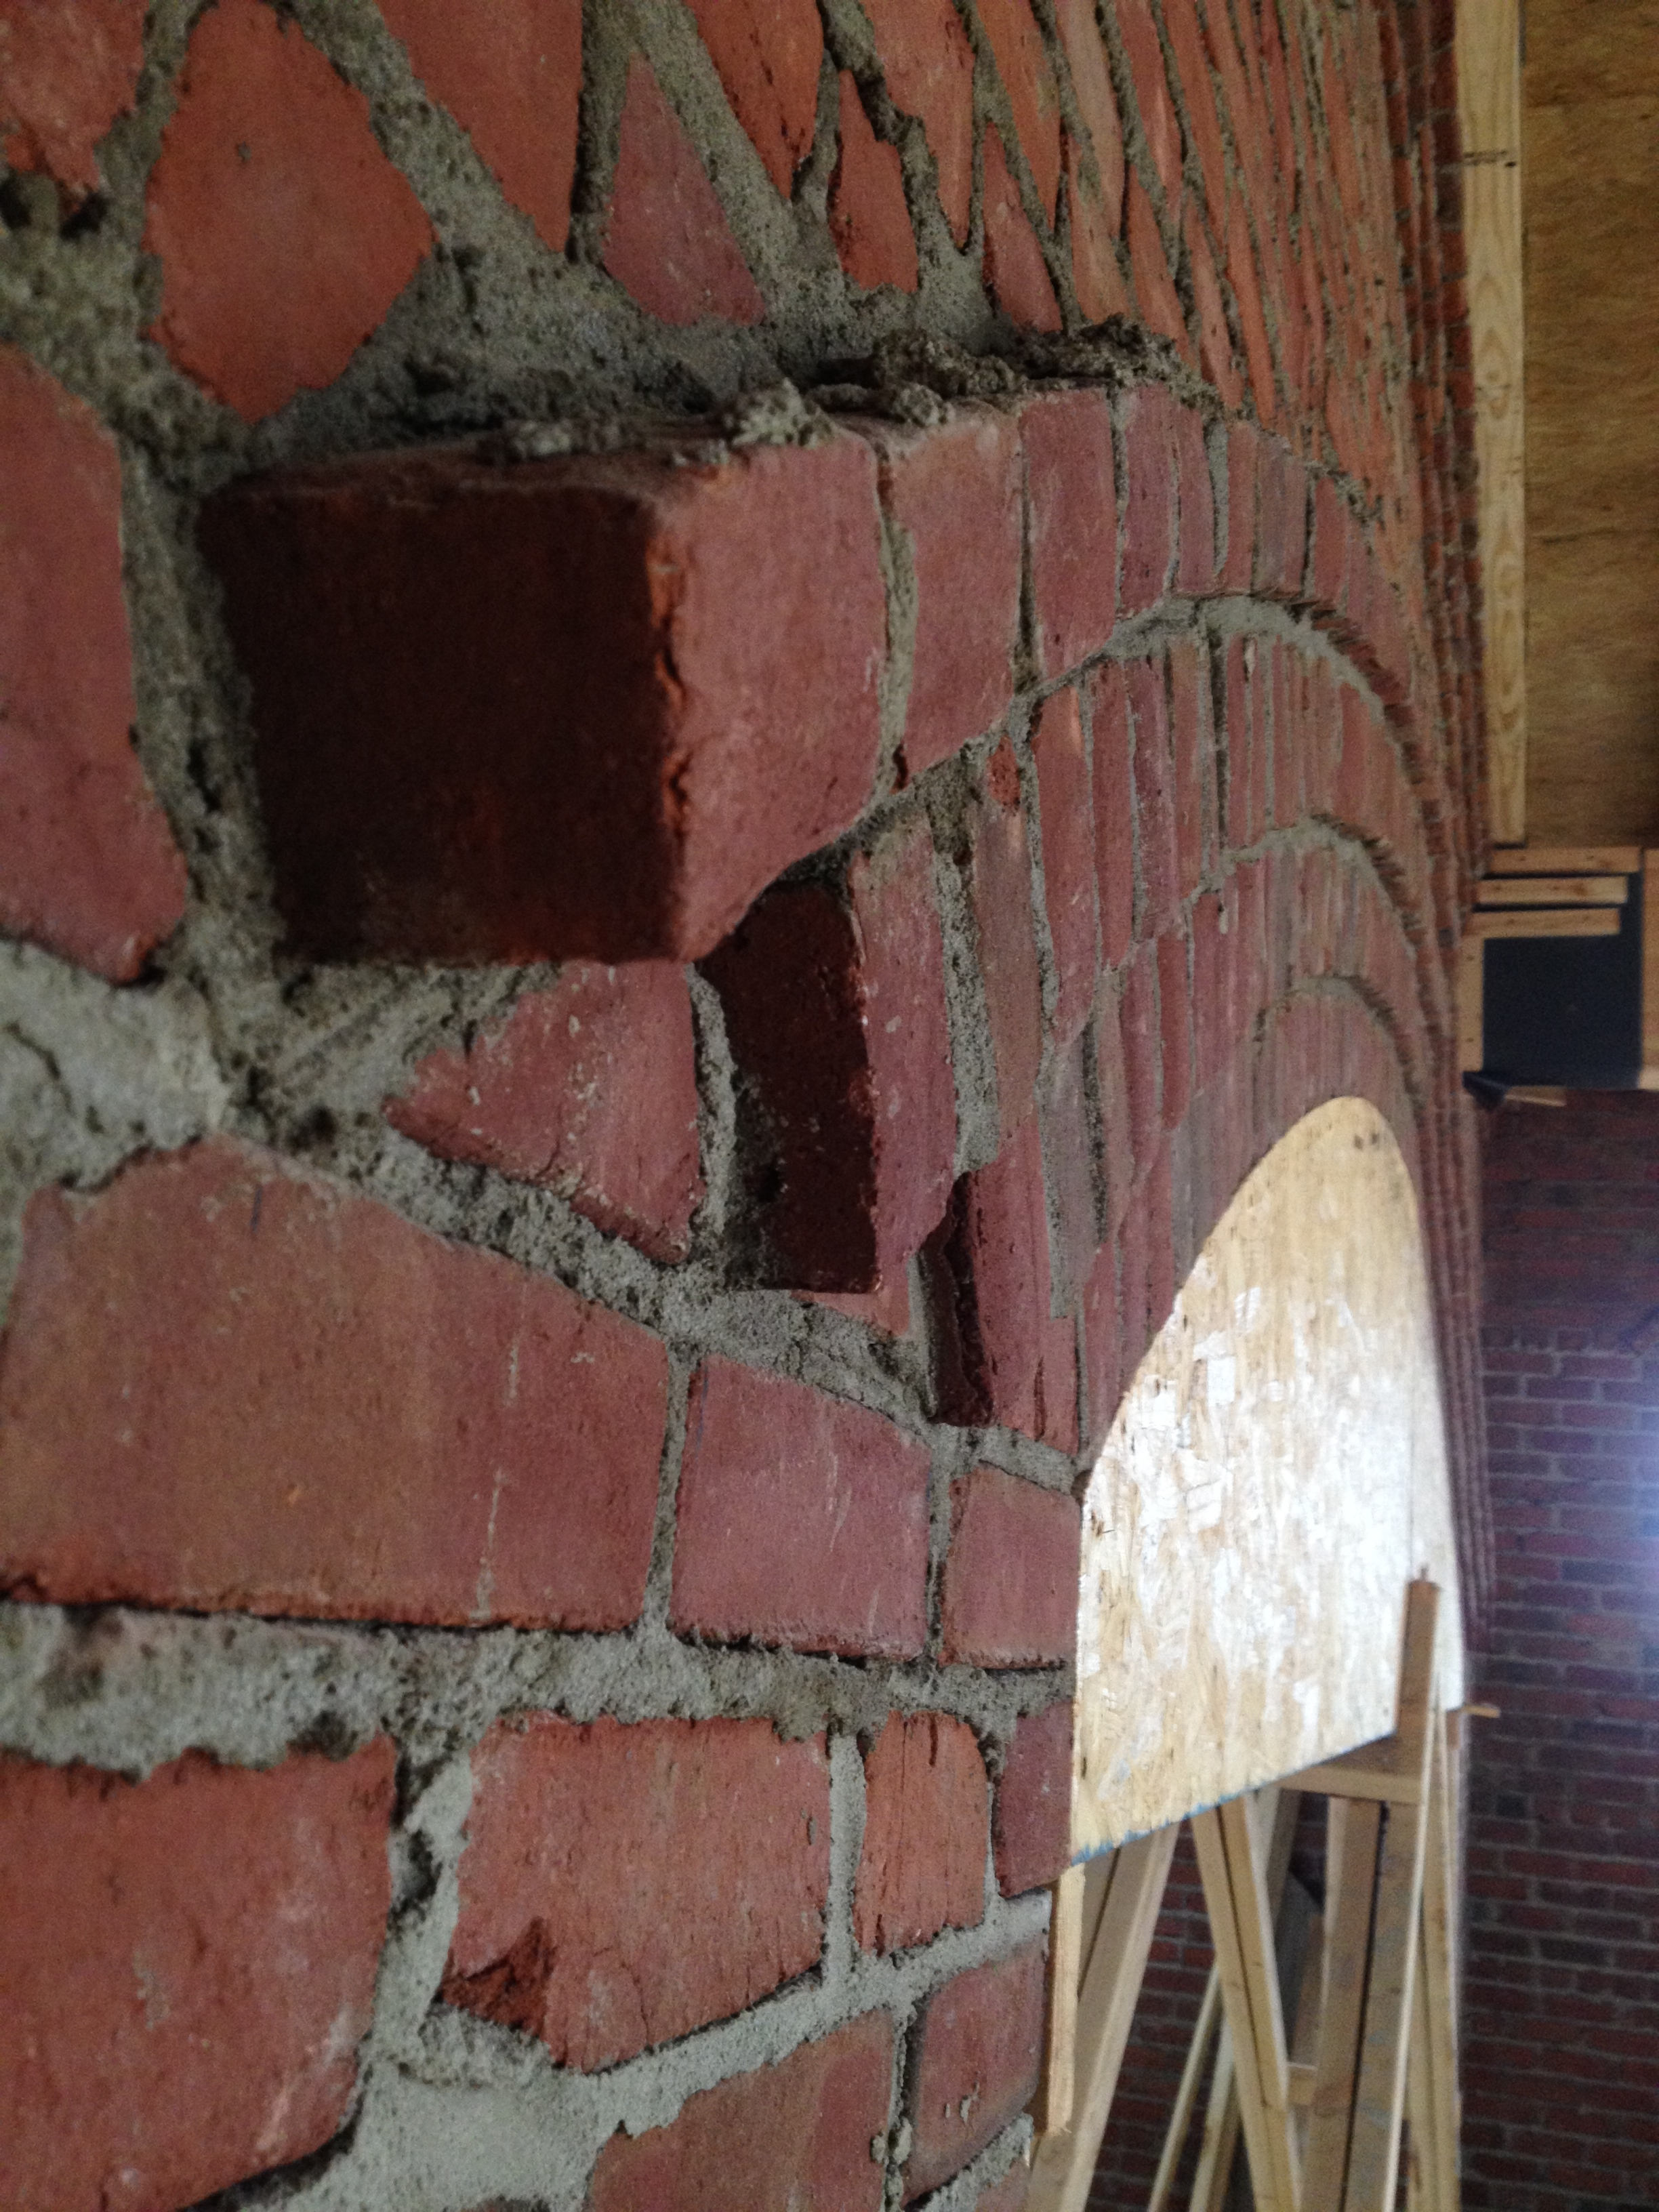 structural masonry, corbeled coursework of buttressing arch